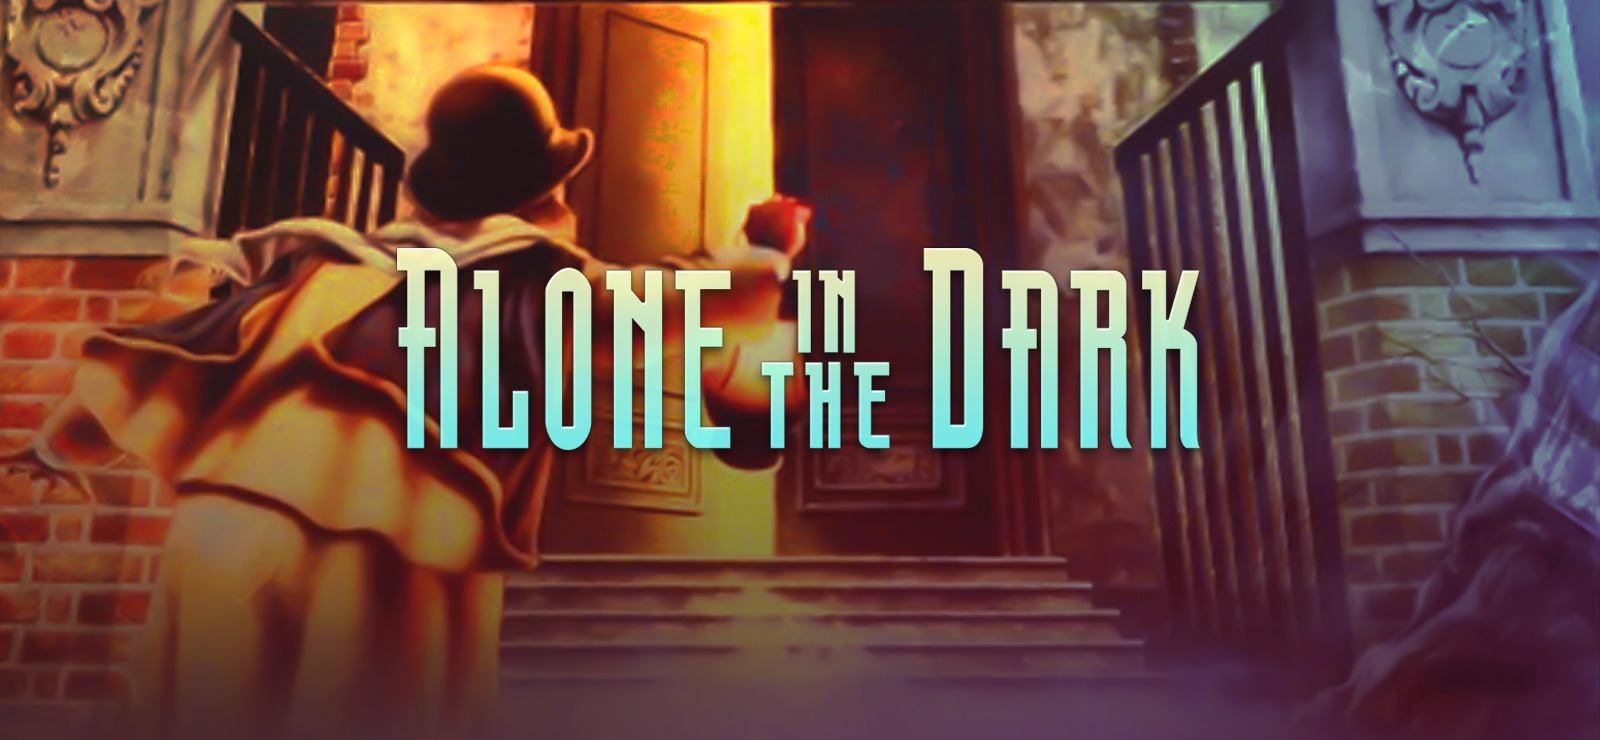 Thq Nordic Has Acquired Alone In The Dark And Act Of War Ips